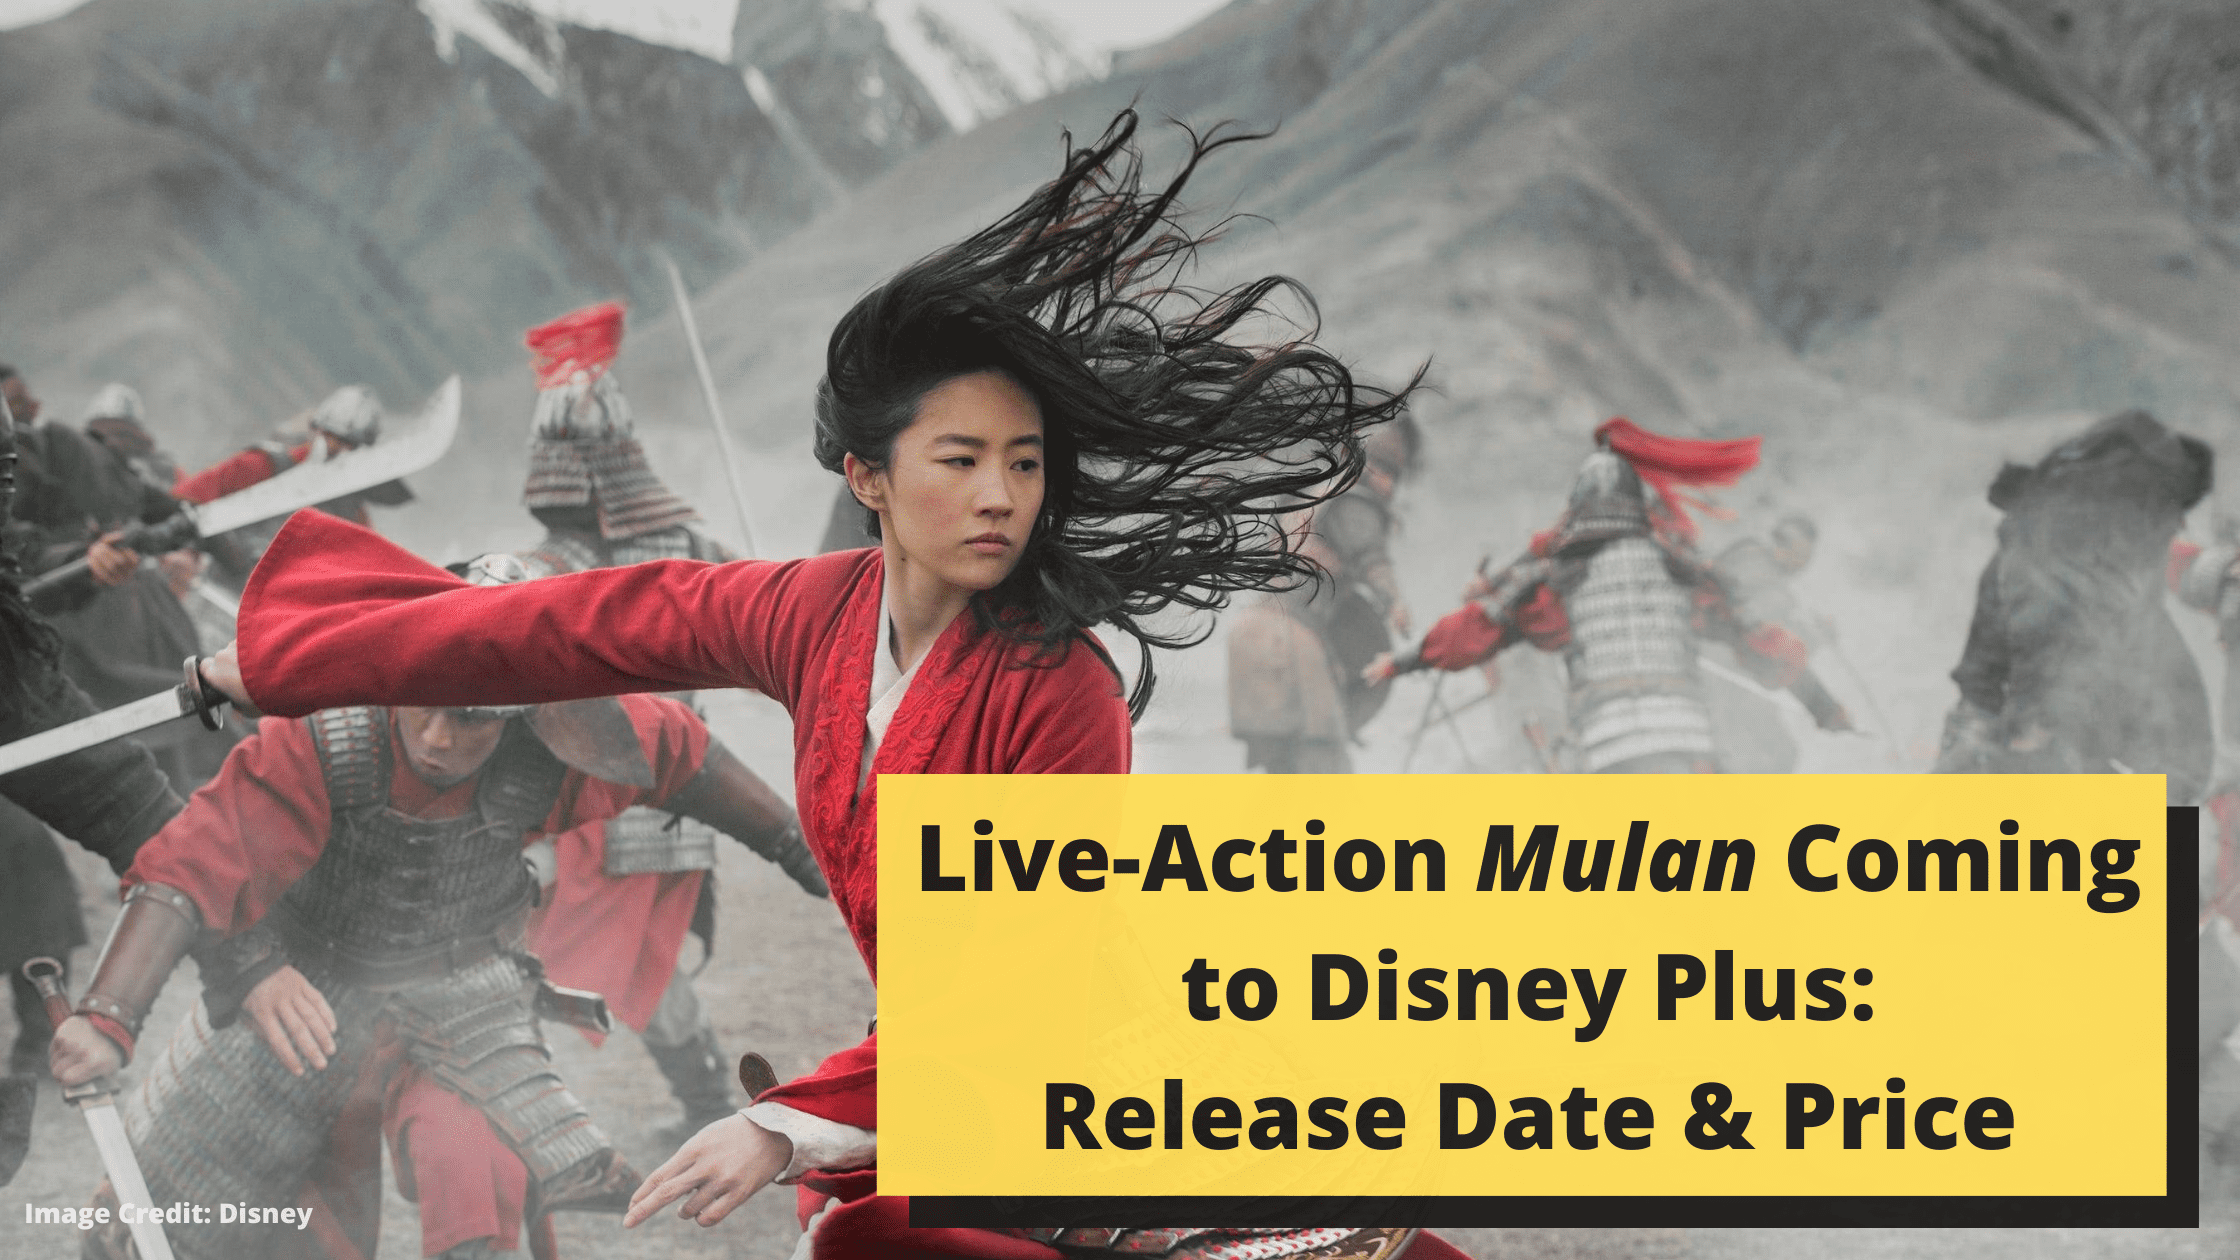 Live-Action Mulan Coming to Disney Plus: Release Date & Price